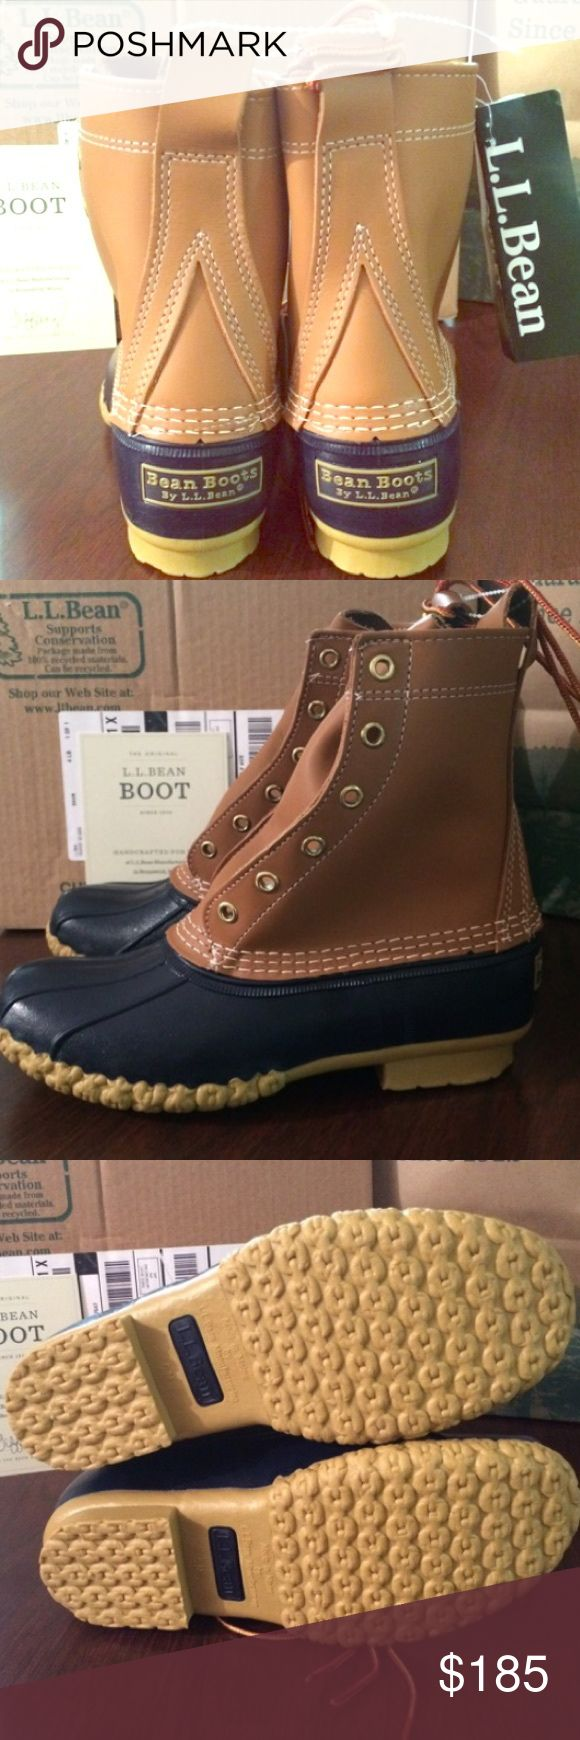 """BRAND NEW‼️8 LL bean boots L.L. Bean Duck NWT 8"""" BRAND NEW❤️. LAST PAIR. NWT‼️not even laced yet! PRICED accordingly as they're SOLD OUT for months online!! Any comments about listing price will be blocked  ❤️Size 8 LL Bean fits(8,8.5,9)depending on sock thinness/thickness &personal preference of fit L.L.Bean boot  AUTHENTIC ORIGINAL DUCK BOOT  WOMENS Warm Winter Boots.Medium width  8""""inch height   ↪️👢See """"Sizing Info"""" Listing 4 more info!↪️ ❤️PERFECT BOOTS 🌲HIGHLY COVETED CHRISTMAS…"""